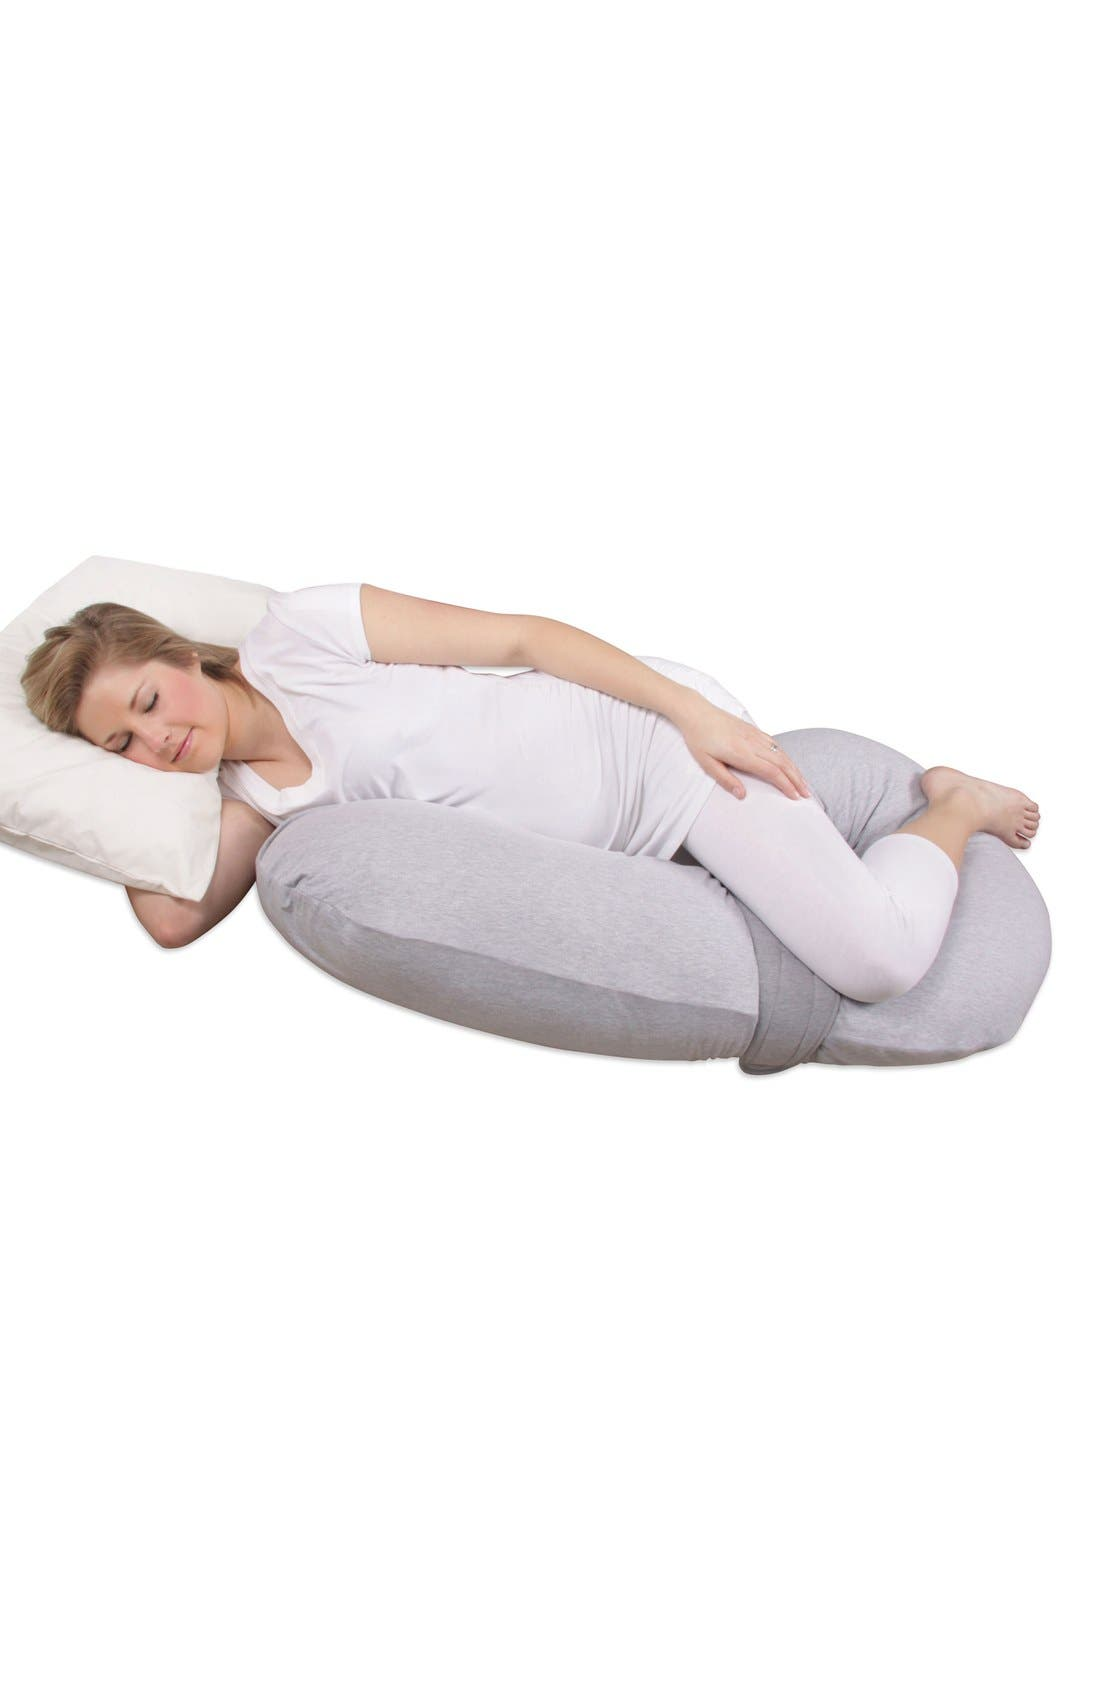 'Preggle<sup>®</sup> Chic - XL' Pregnancy Support Pillow with Jersey Cover,                             Alternate thumbnail 2, color,                             HEATHER GREY